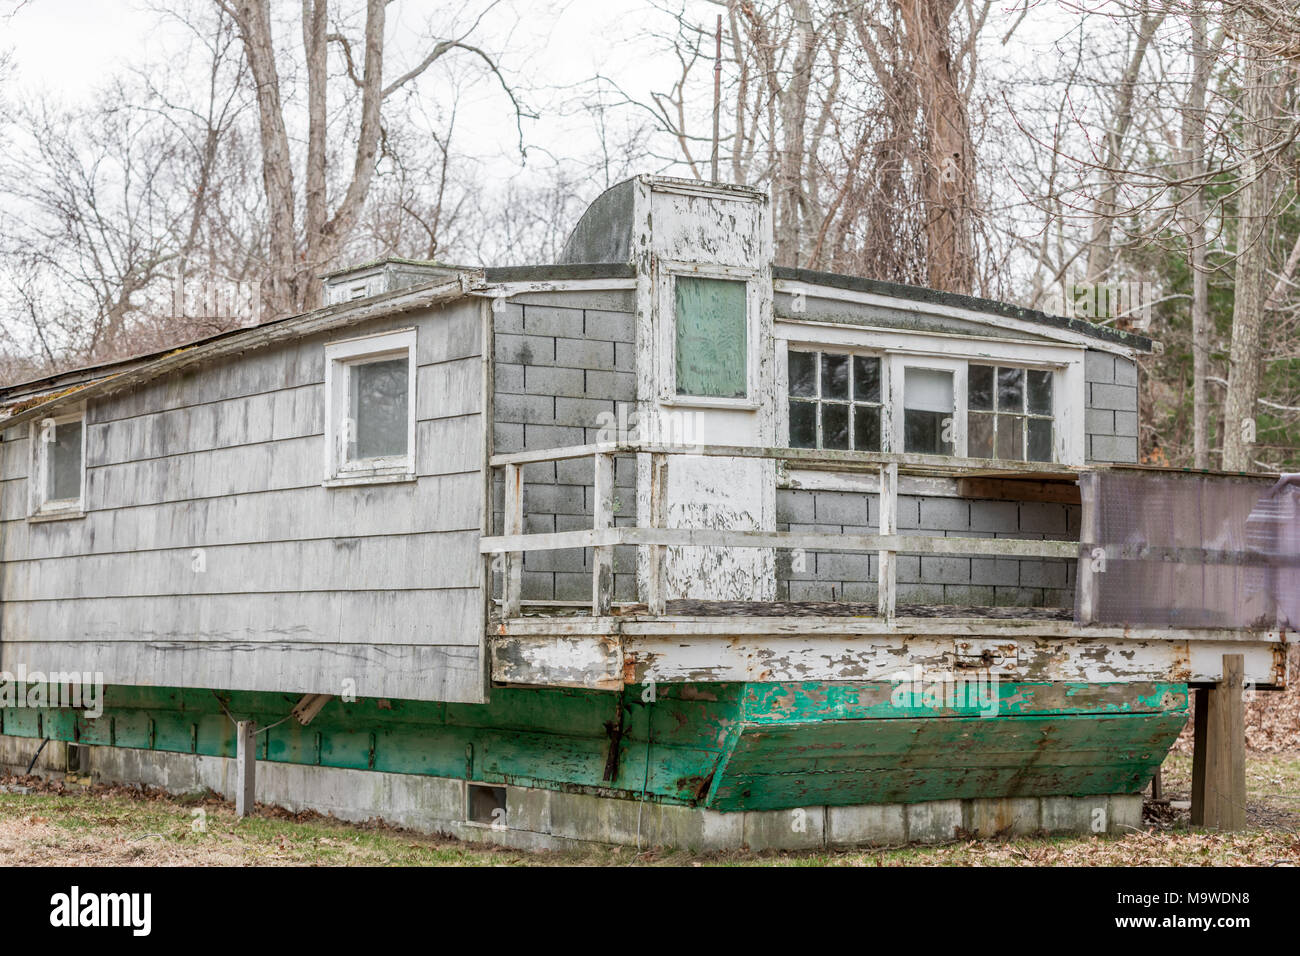 old dilapidated structure on the verge of falling down in long island ny - Stock Image